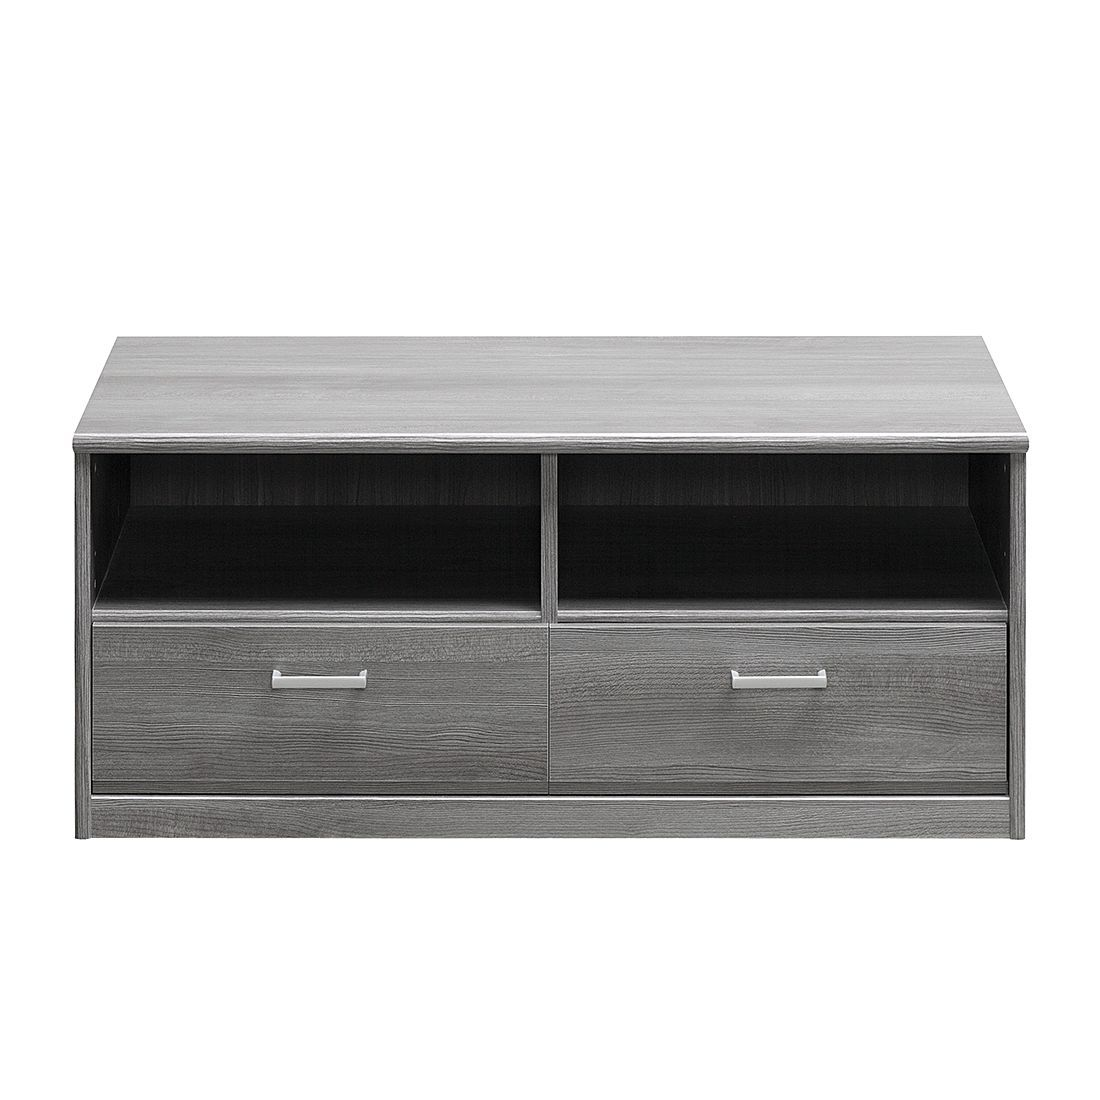 TV Unterschrank Soft Plus